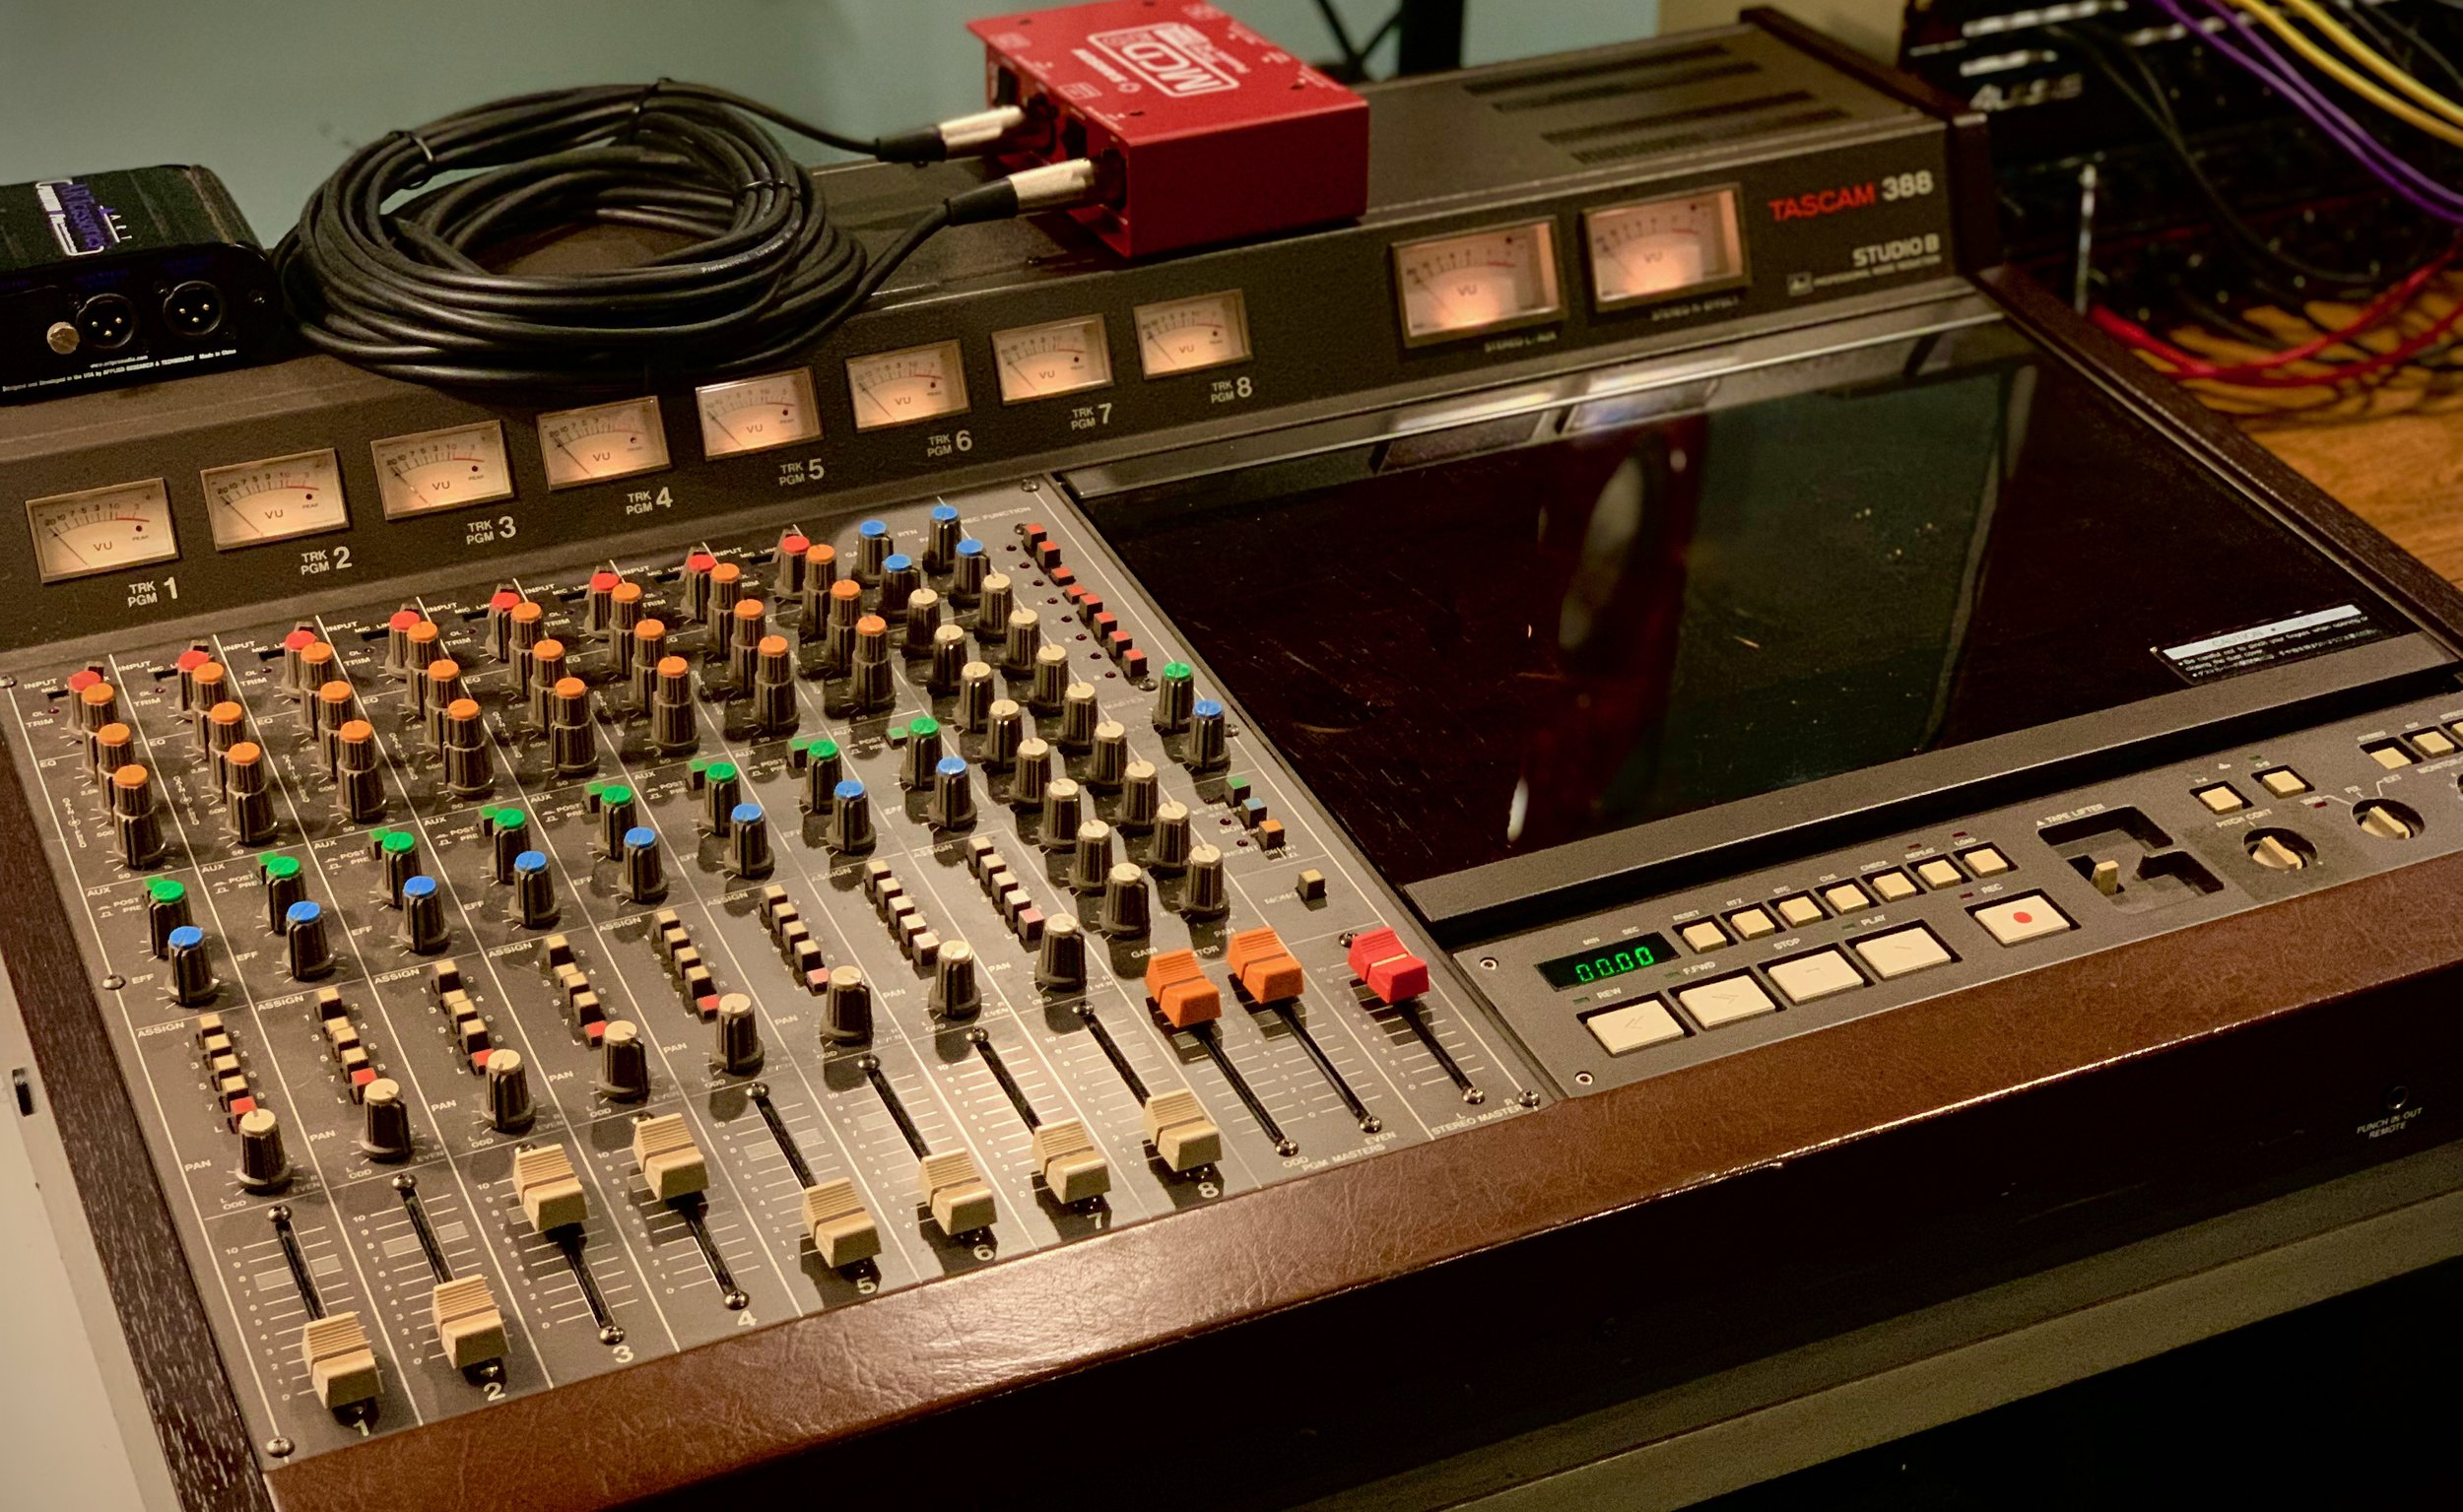 Each Prophet 6 patch was recorded to the Tascam 388 8-track reel-to-reel tape machine.